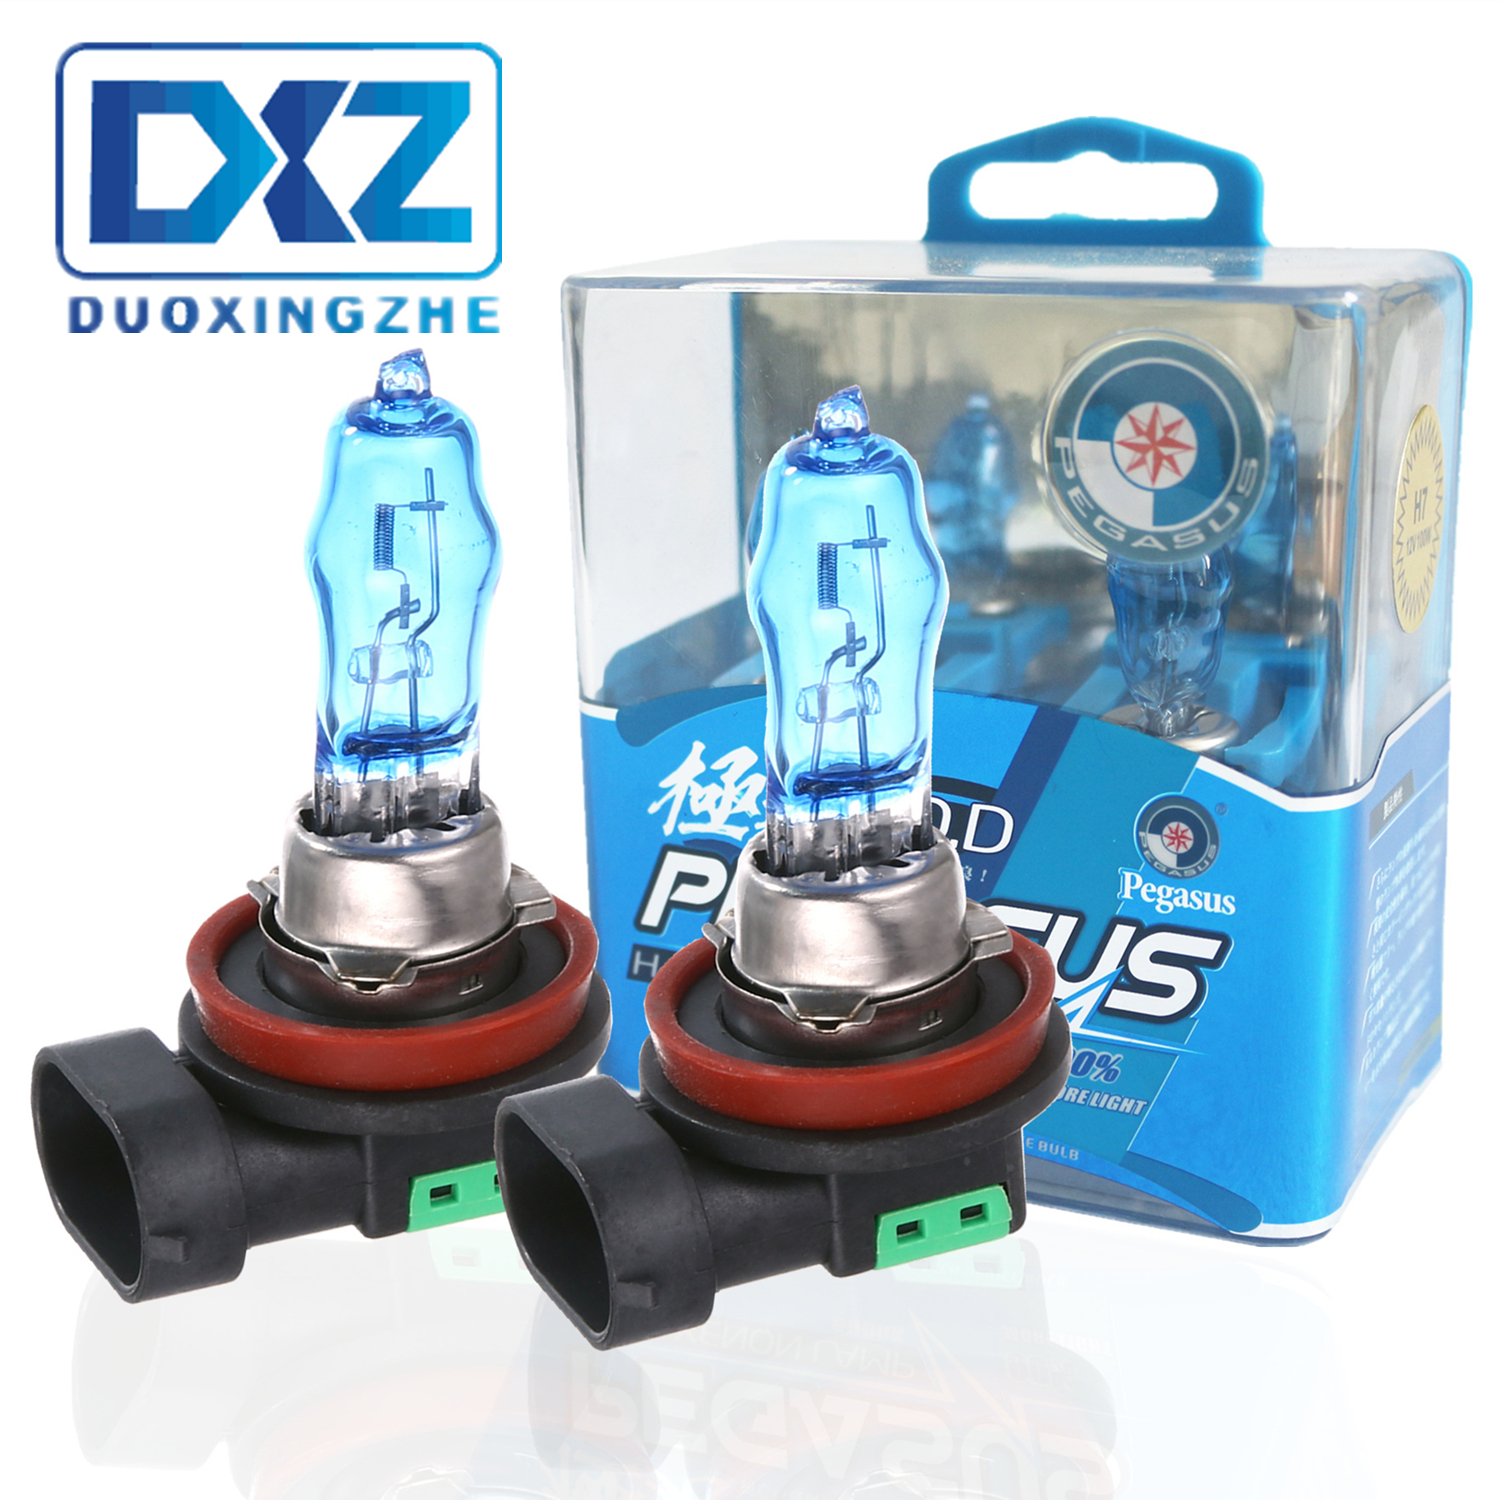 DXZ 2Pcs <font><b>H8</b></font> H9 12V 100W 6000K Car HOD H11 Super <font><b>White</b></font> <font><b>Halogen</b></font> Light Source Bulbs Auto Headlights Lamp Automobile Fog Light Bulbs image